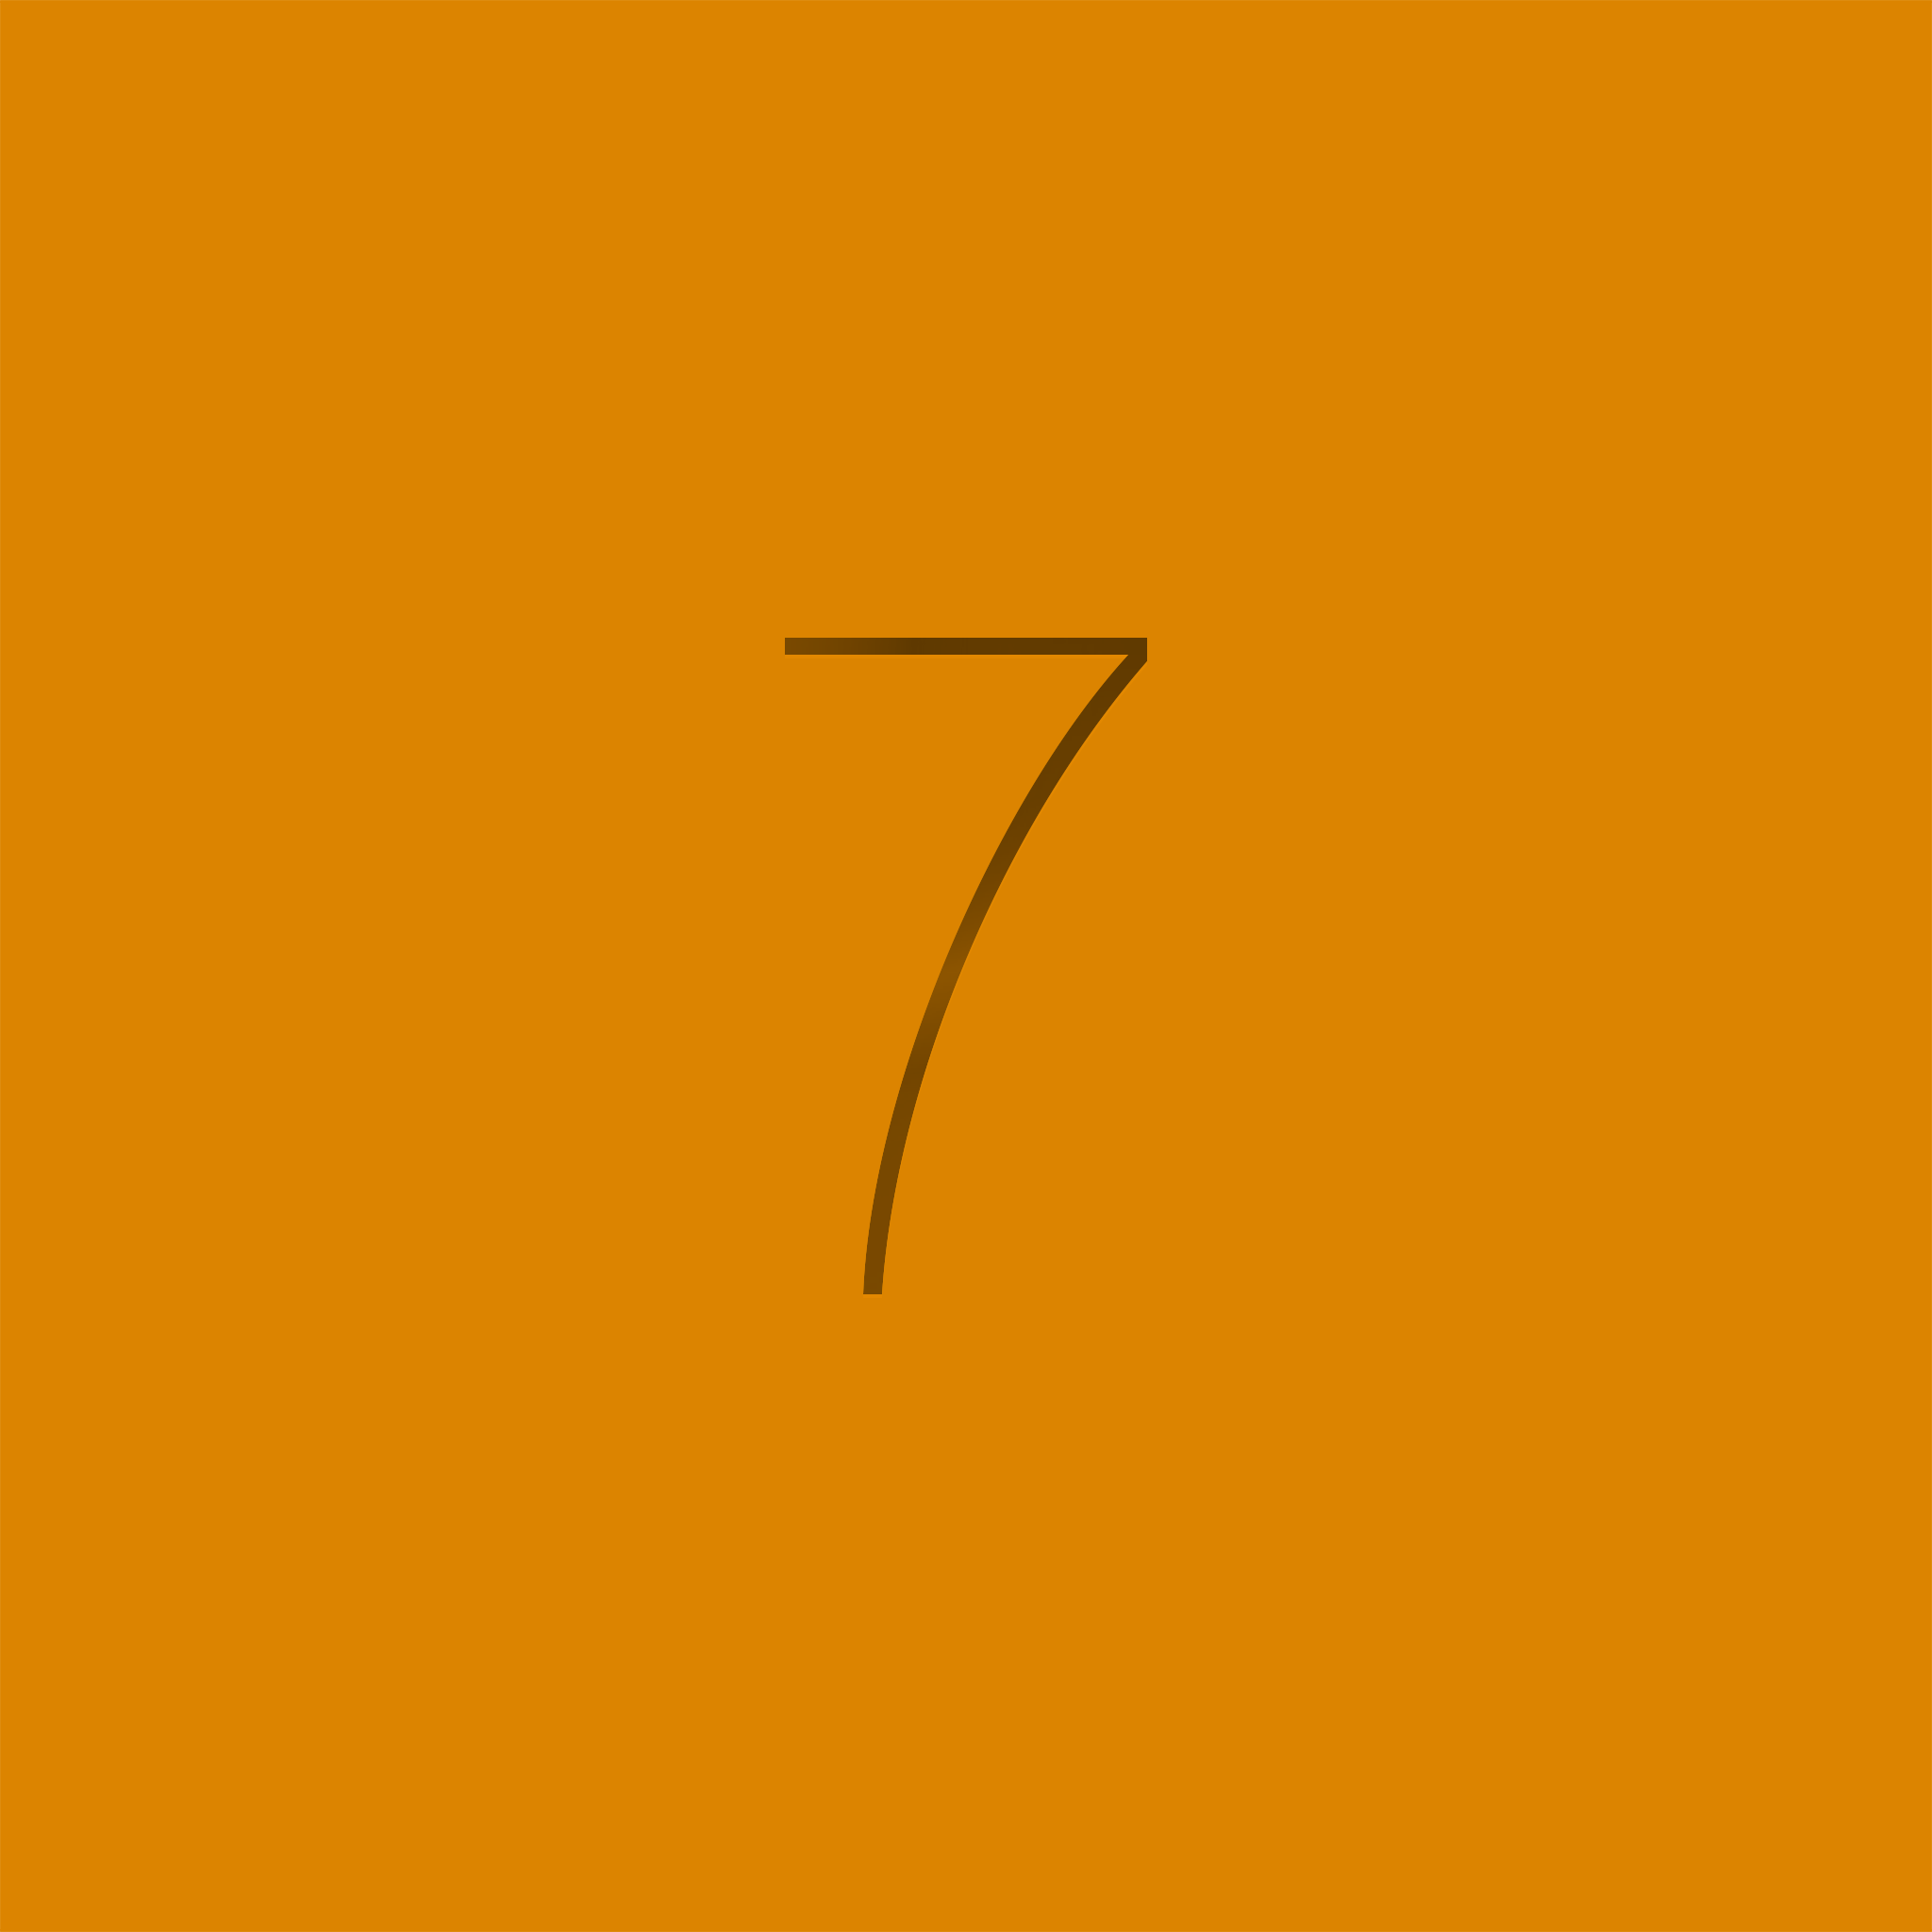 iOS 7 brown